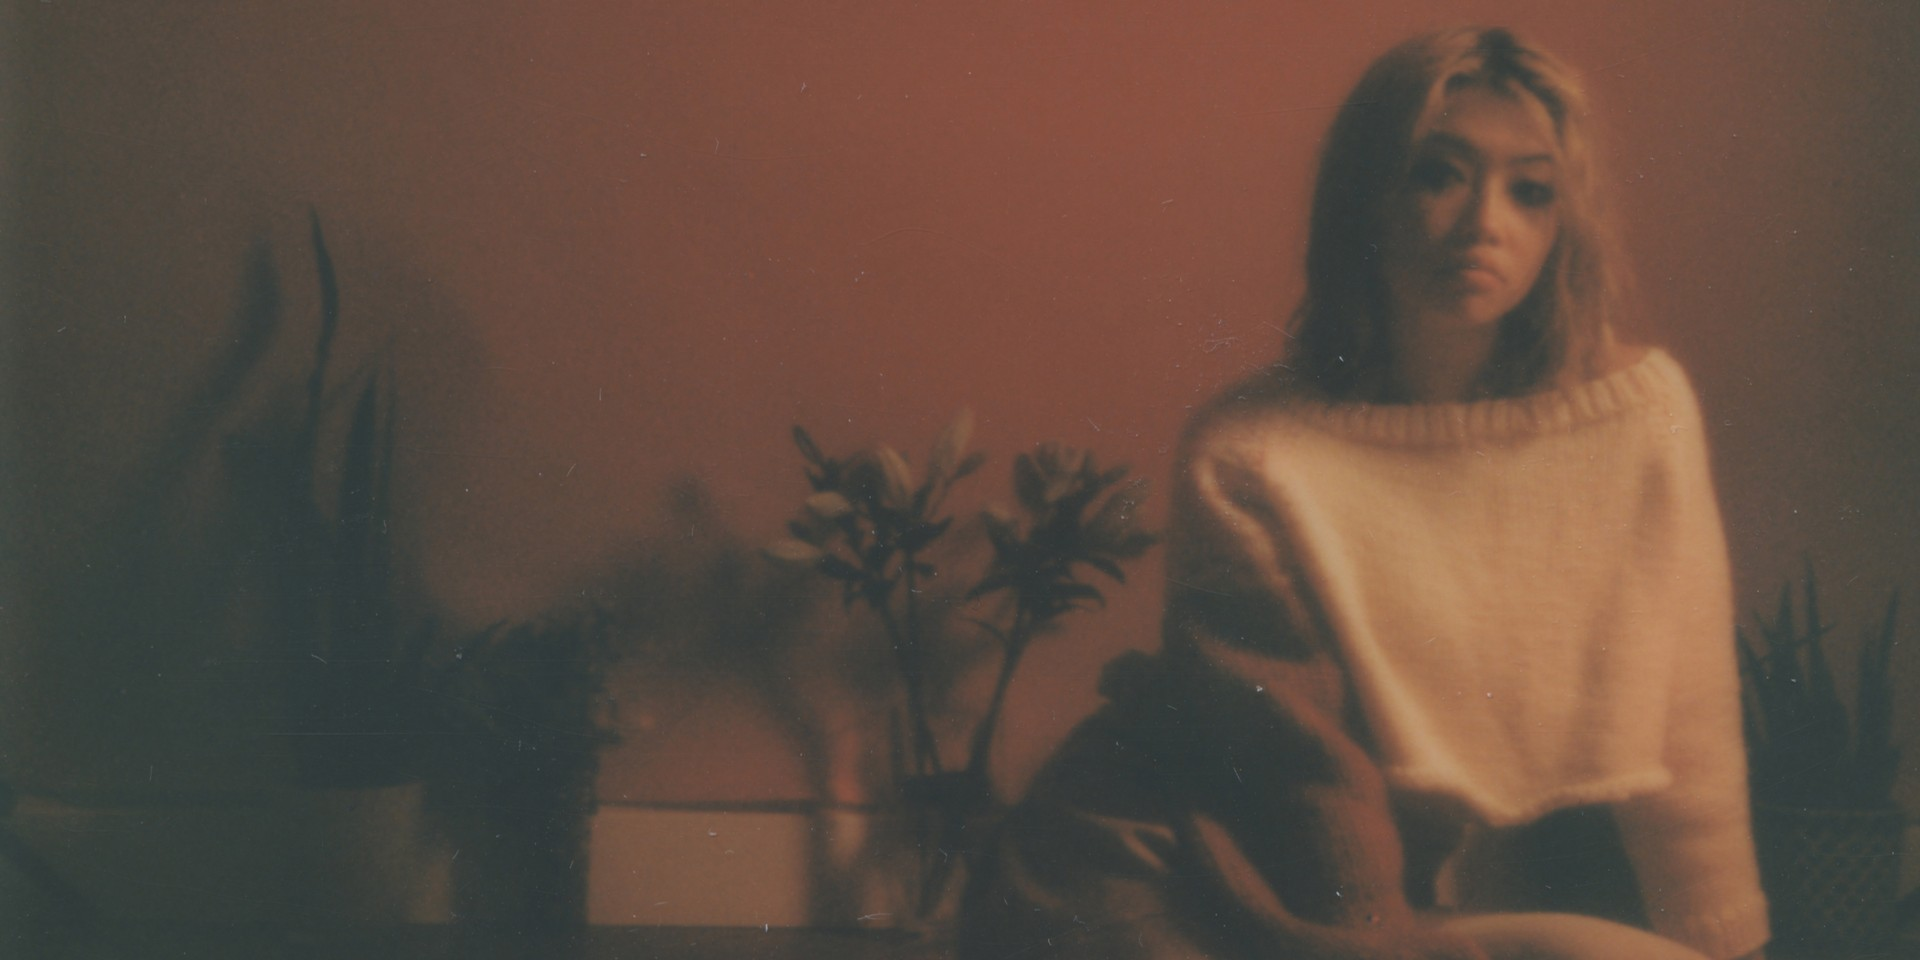 """""""'Care' came from a sensitive place in my heart"""": Beabadoobee on her new single and debut album 'Fake It Flowers' - listen"""